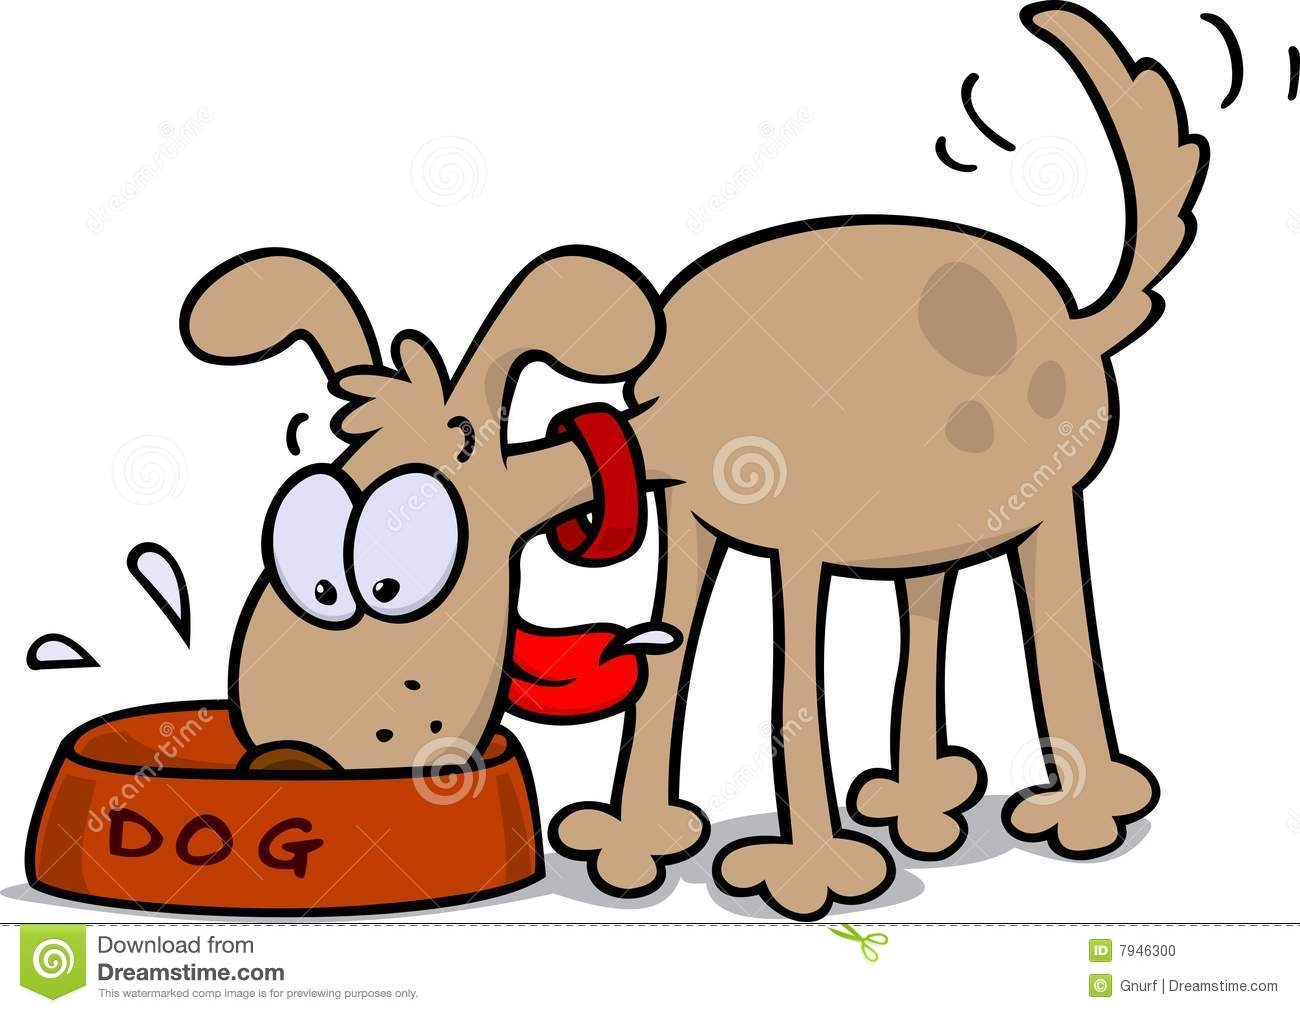 Dog homework clipart clipart graphic download Dog homework clipart graphic download